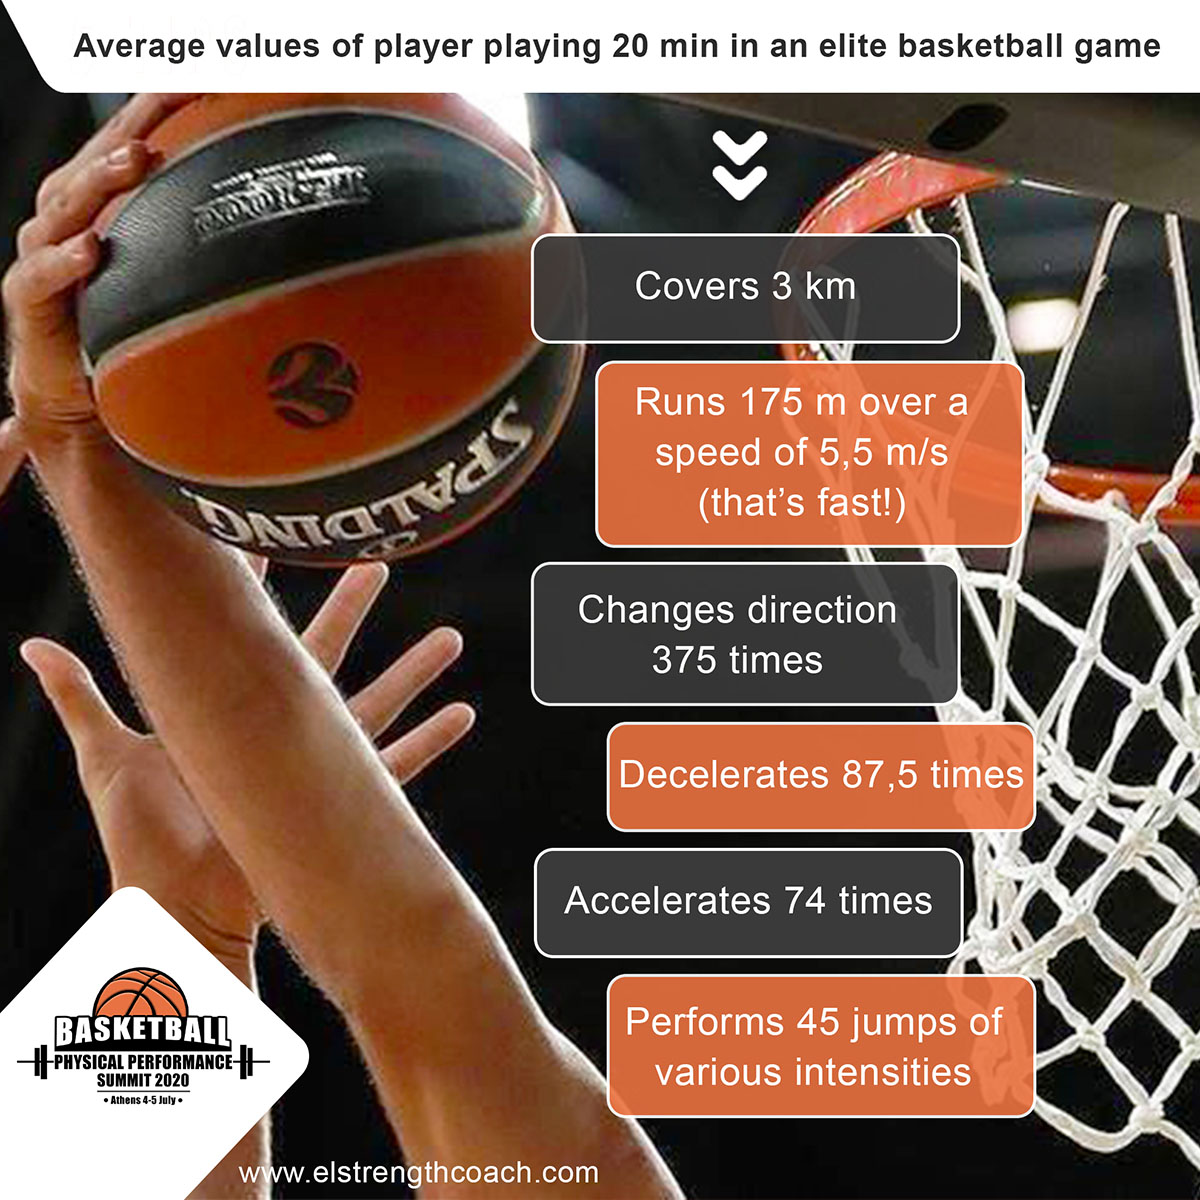 Average values of player playing 20 min in an elite basketball game